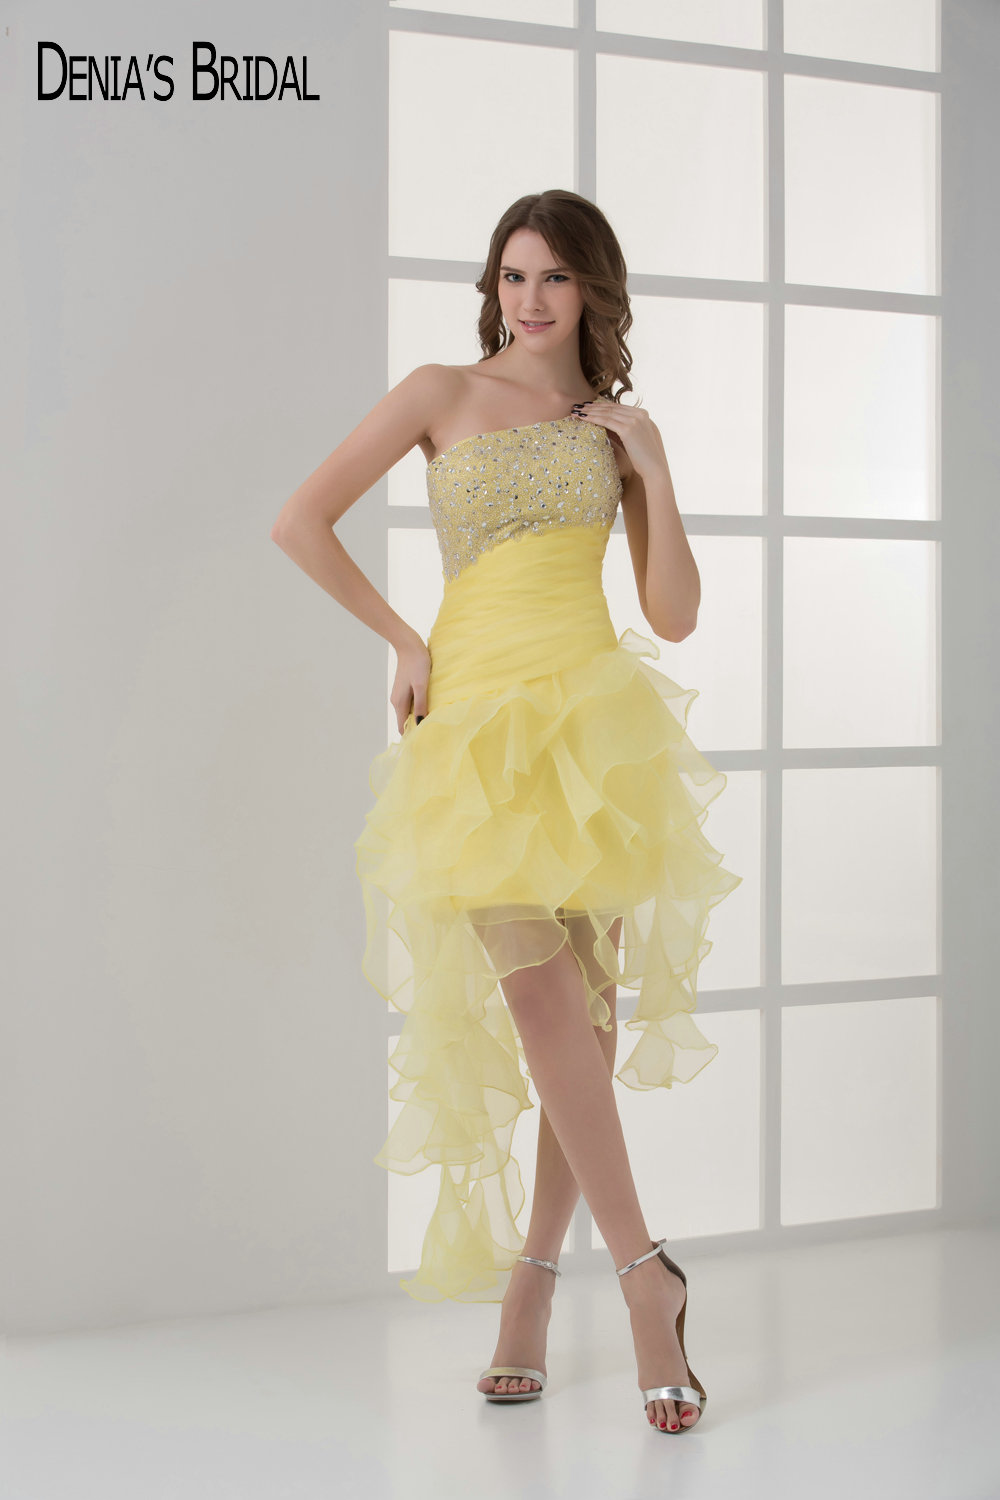 2017 Short Yellow Cocktail Party Dresses With Strapless Neckline